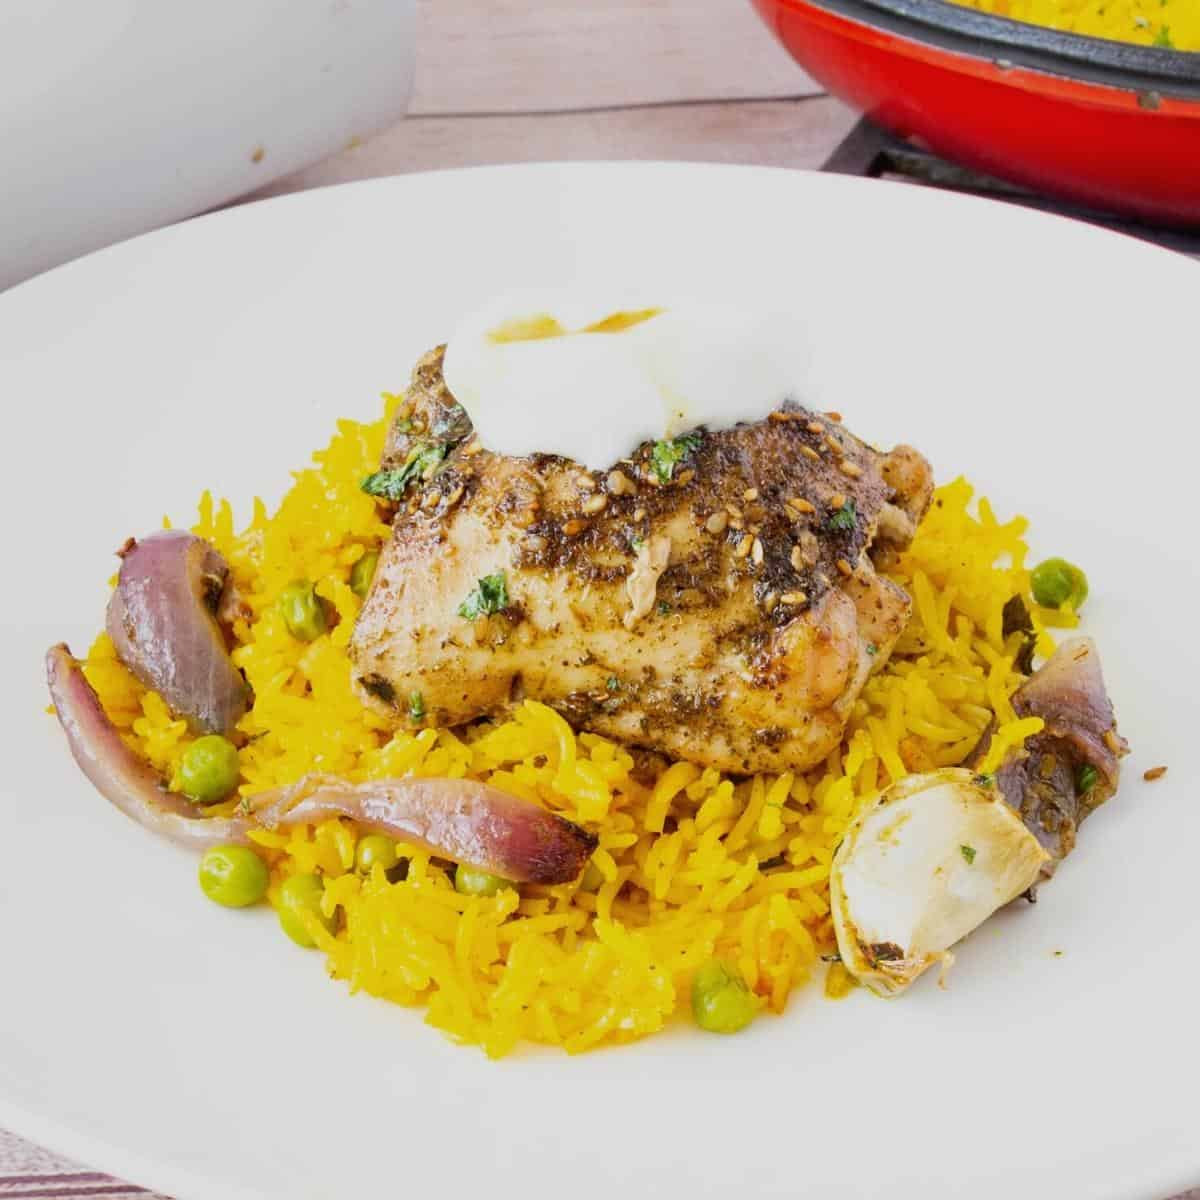 Chicken served over turmeric rice in a white plate.